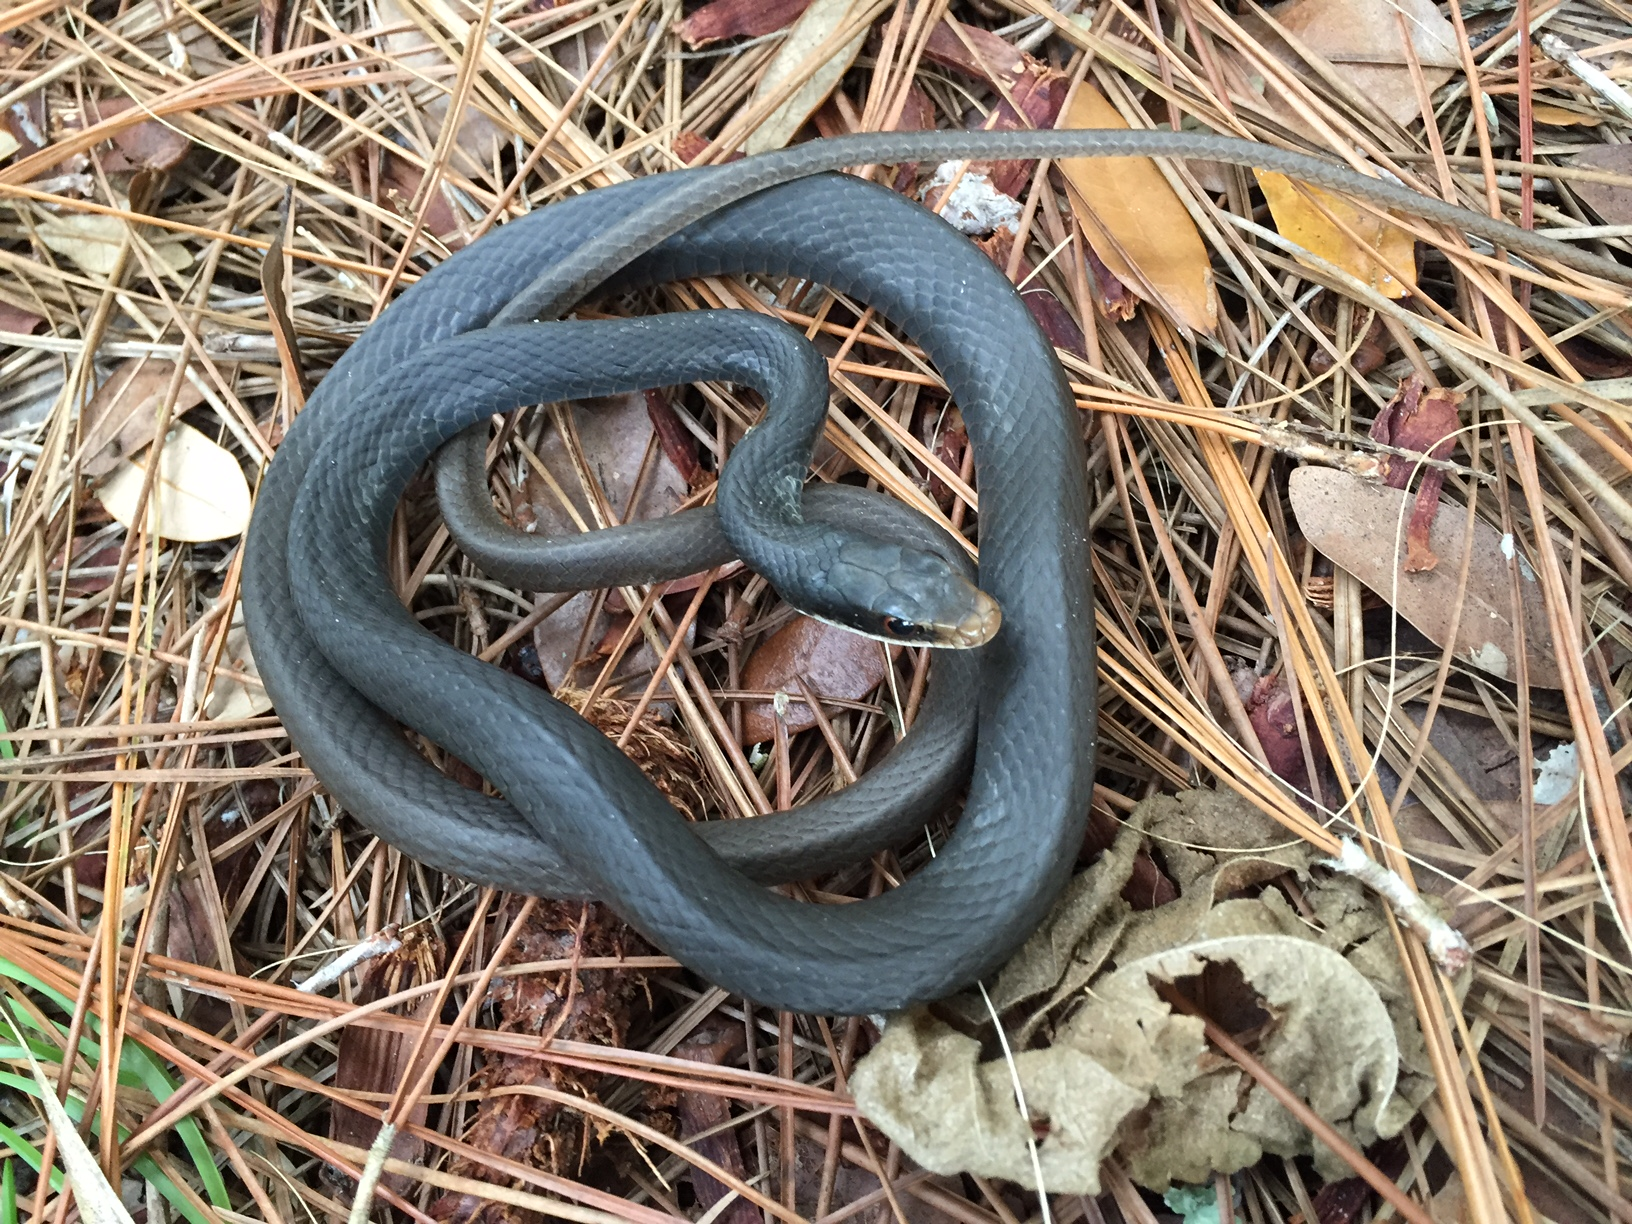 Southern Black Racer Rescue Tgo Nature Center